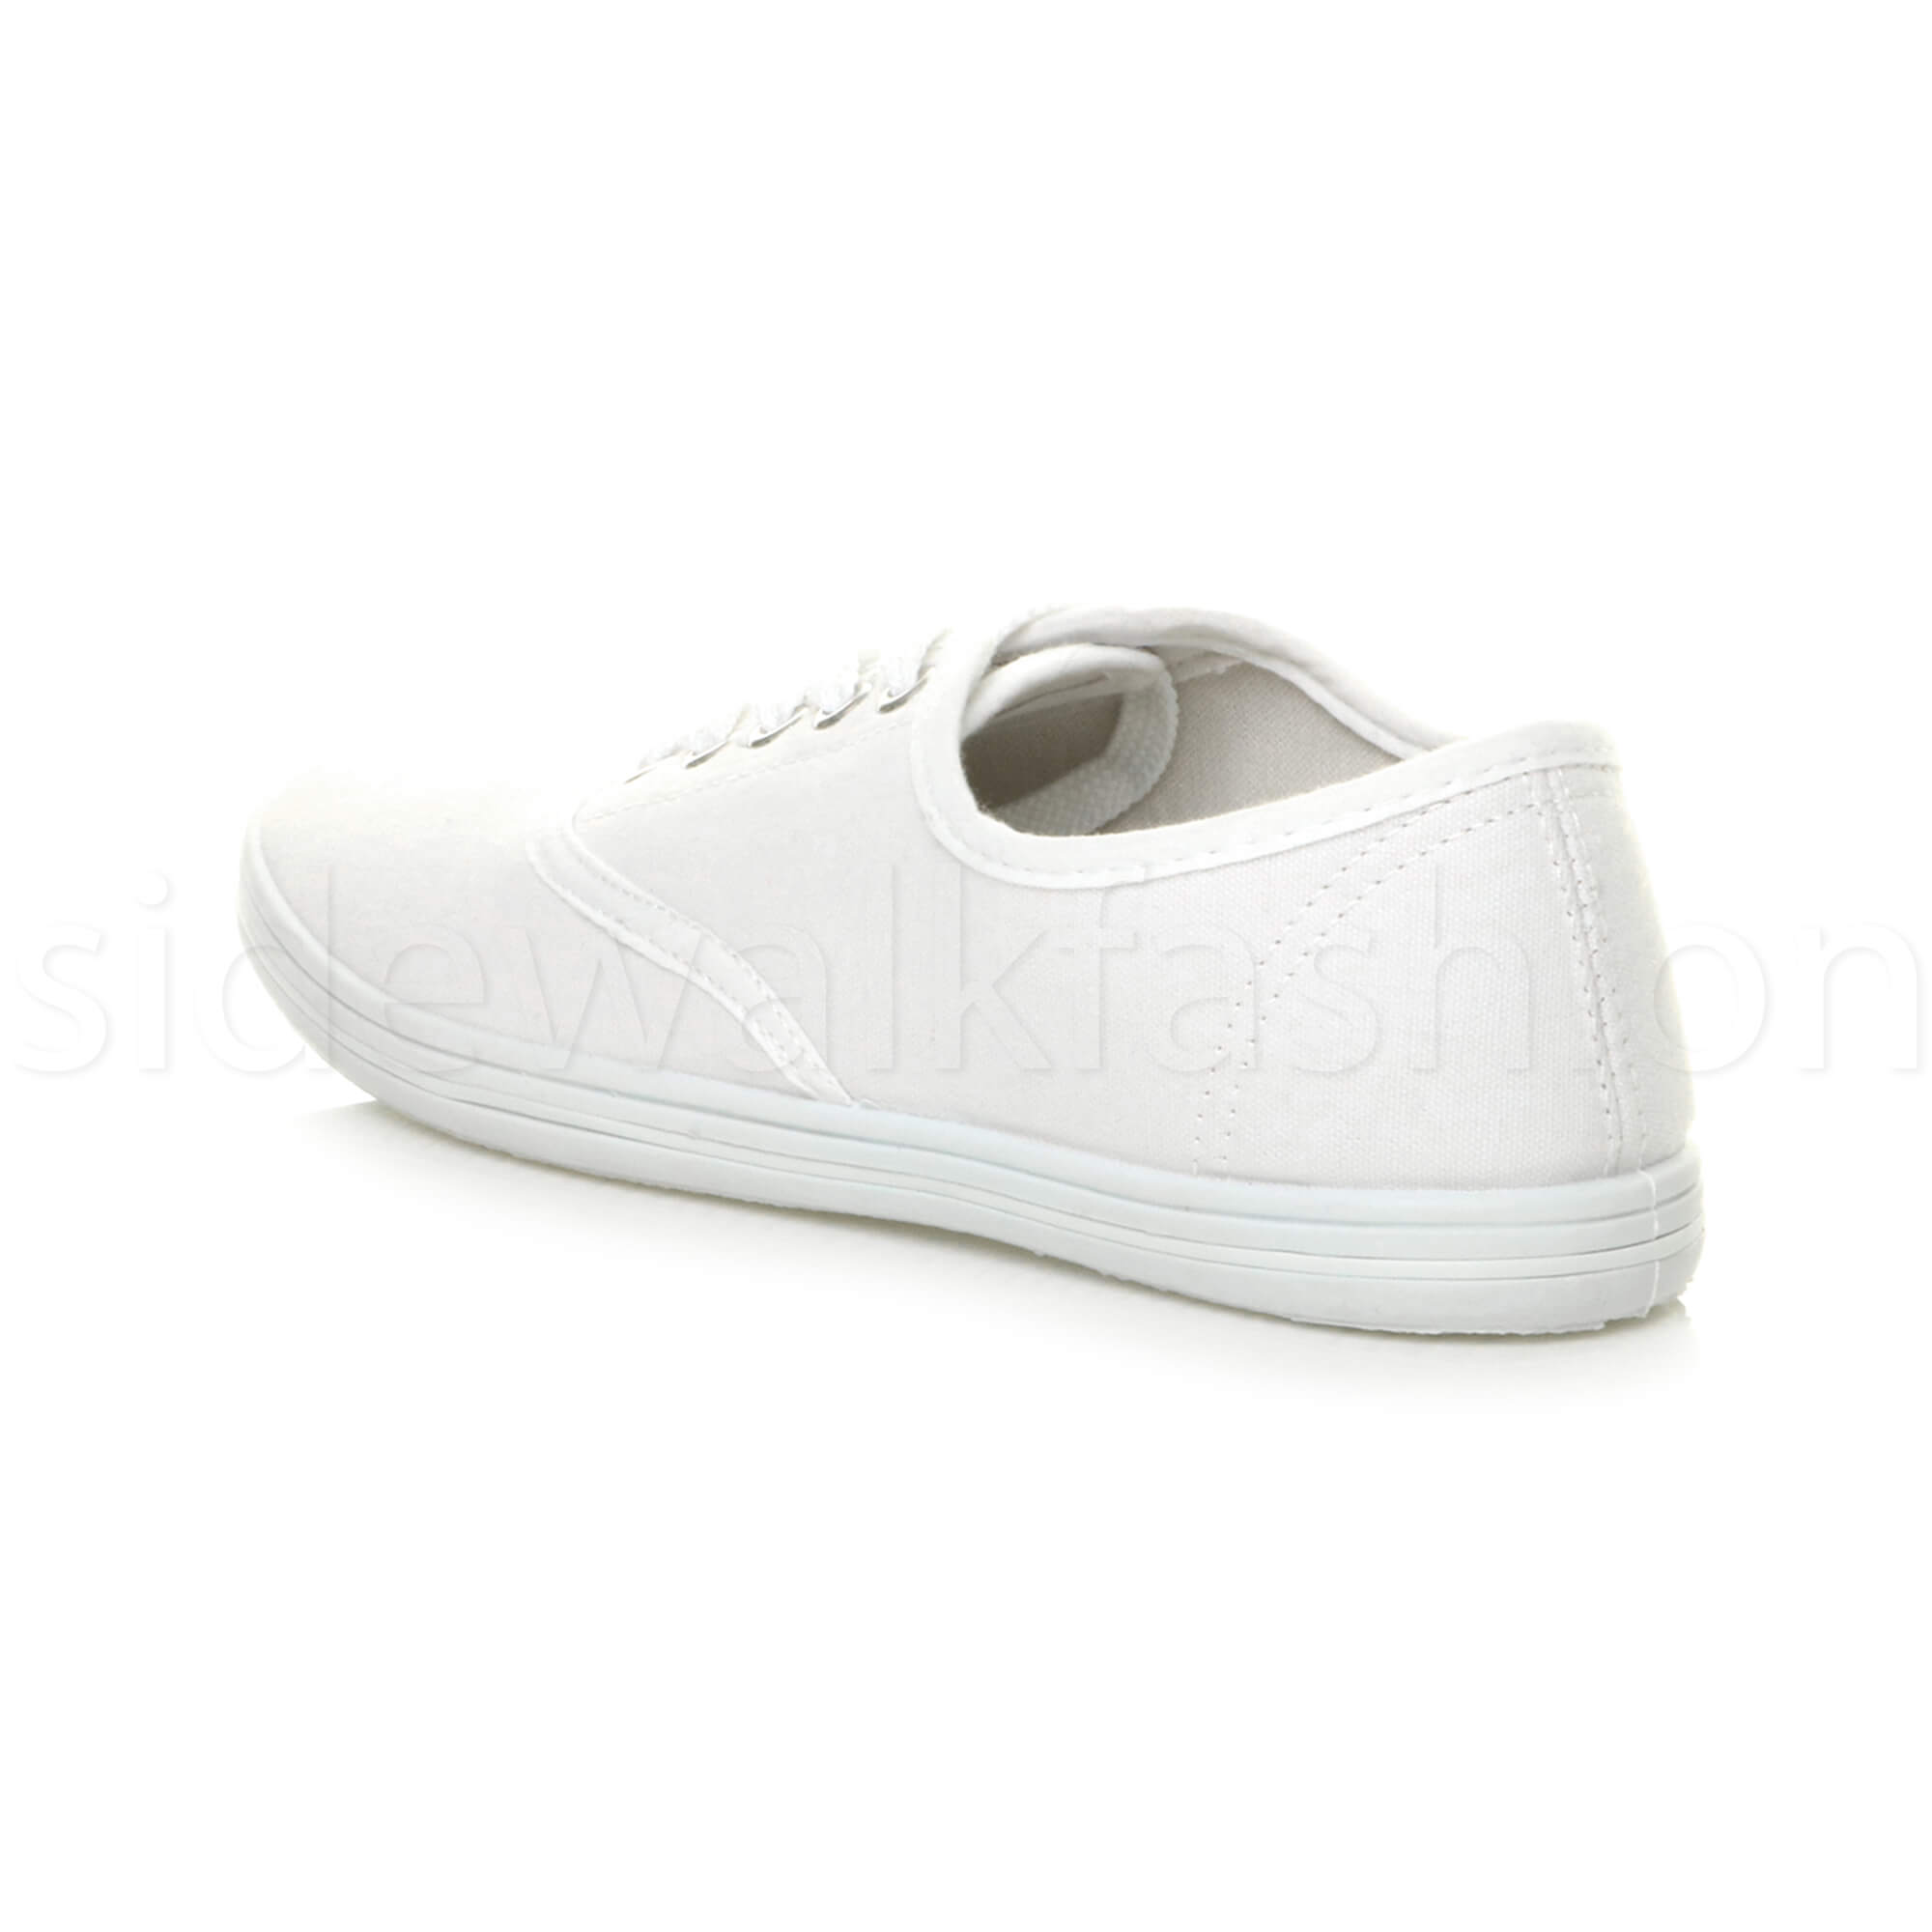 Mens-canvas-trainers-plimsoles-plimsolls-shoes-lace-up-pumps-size thumbnail 26